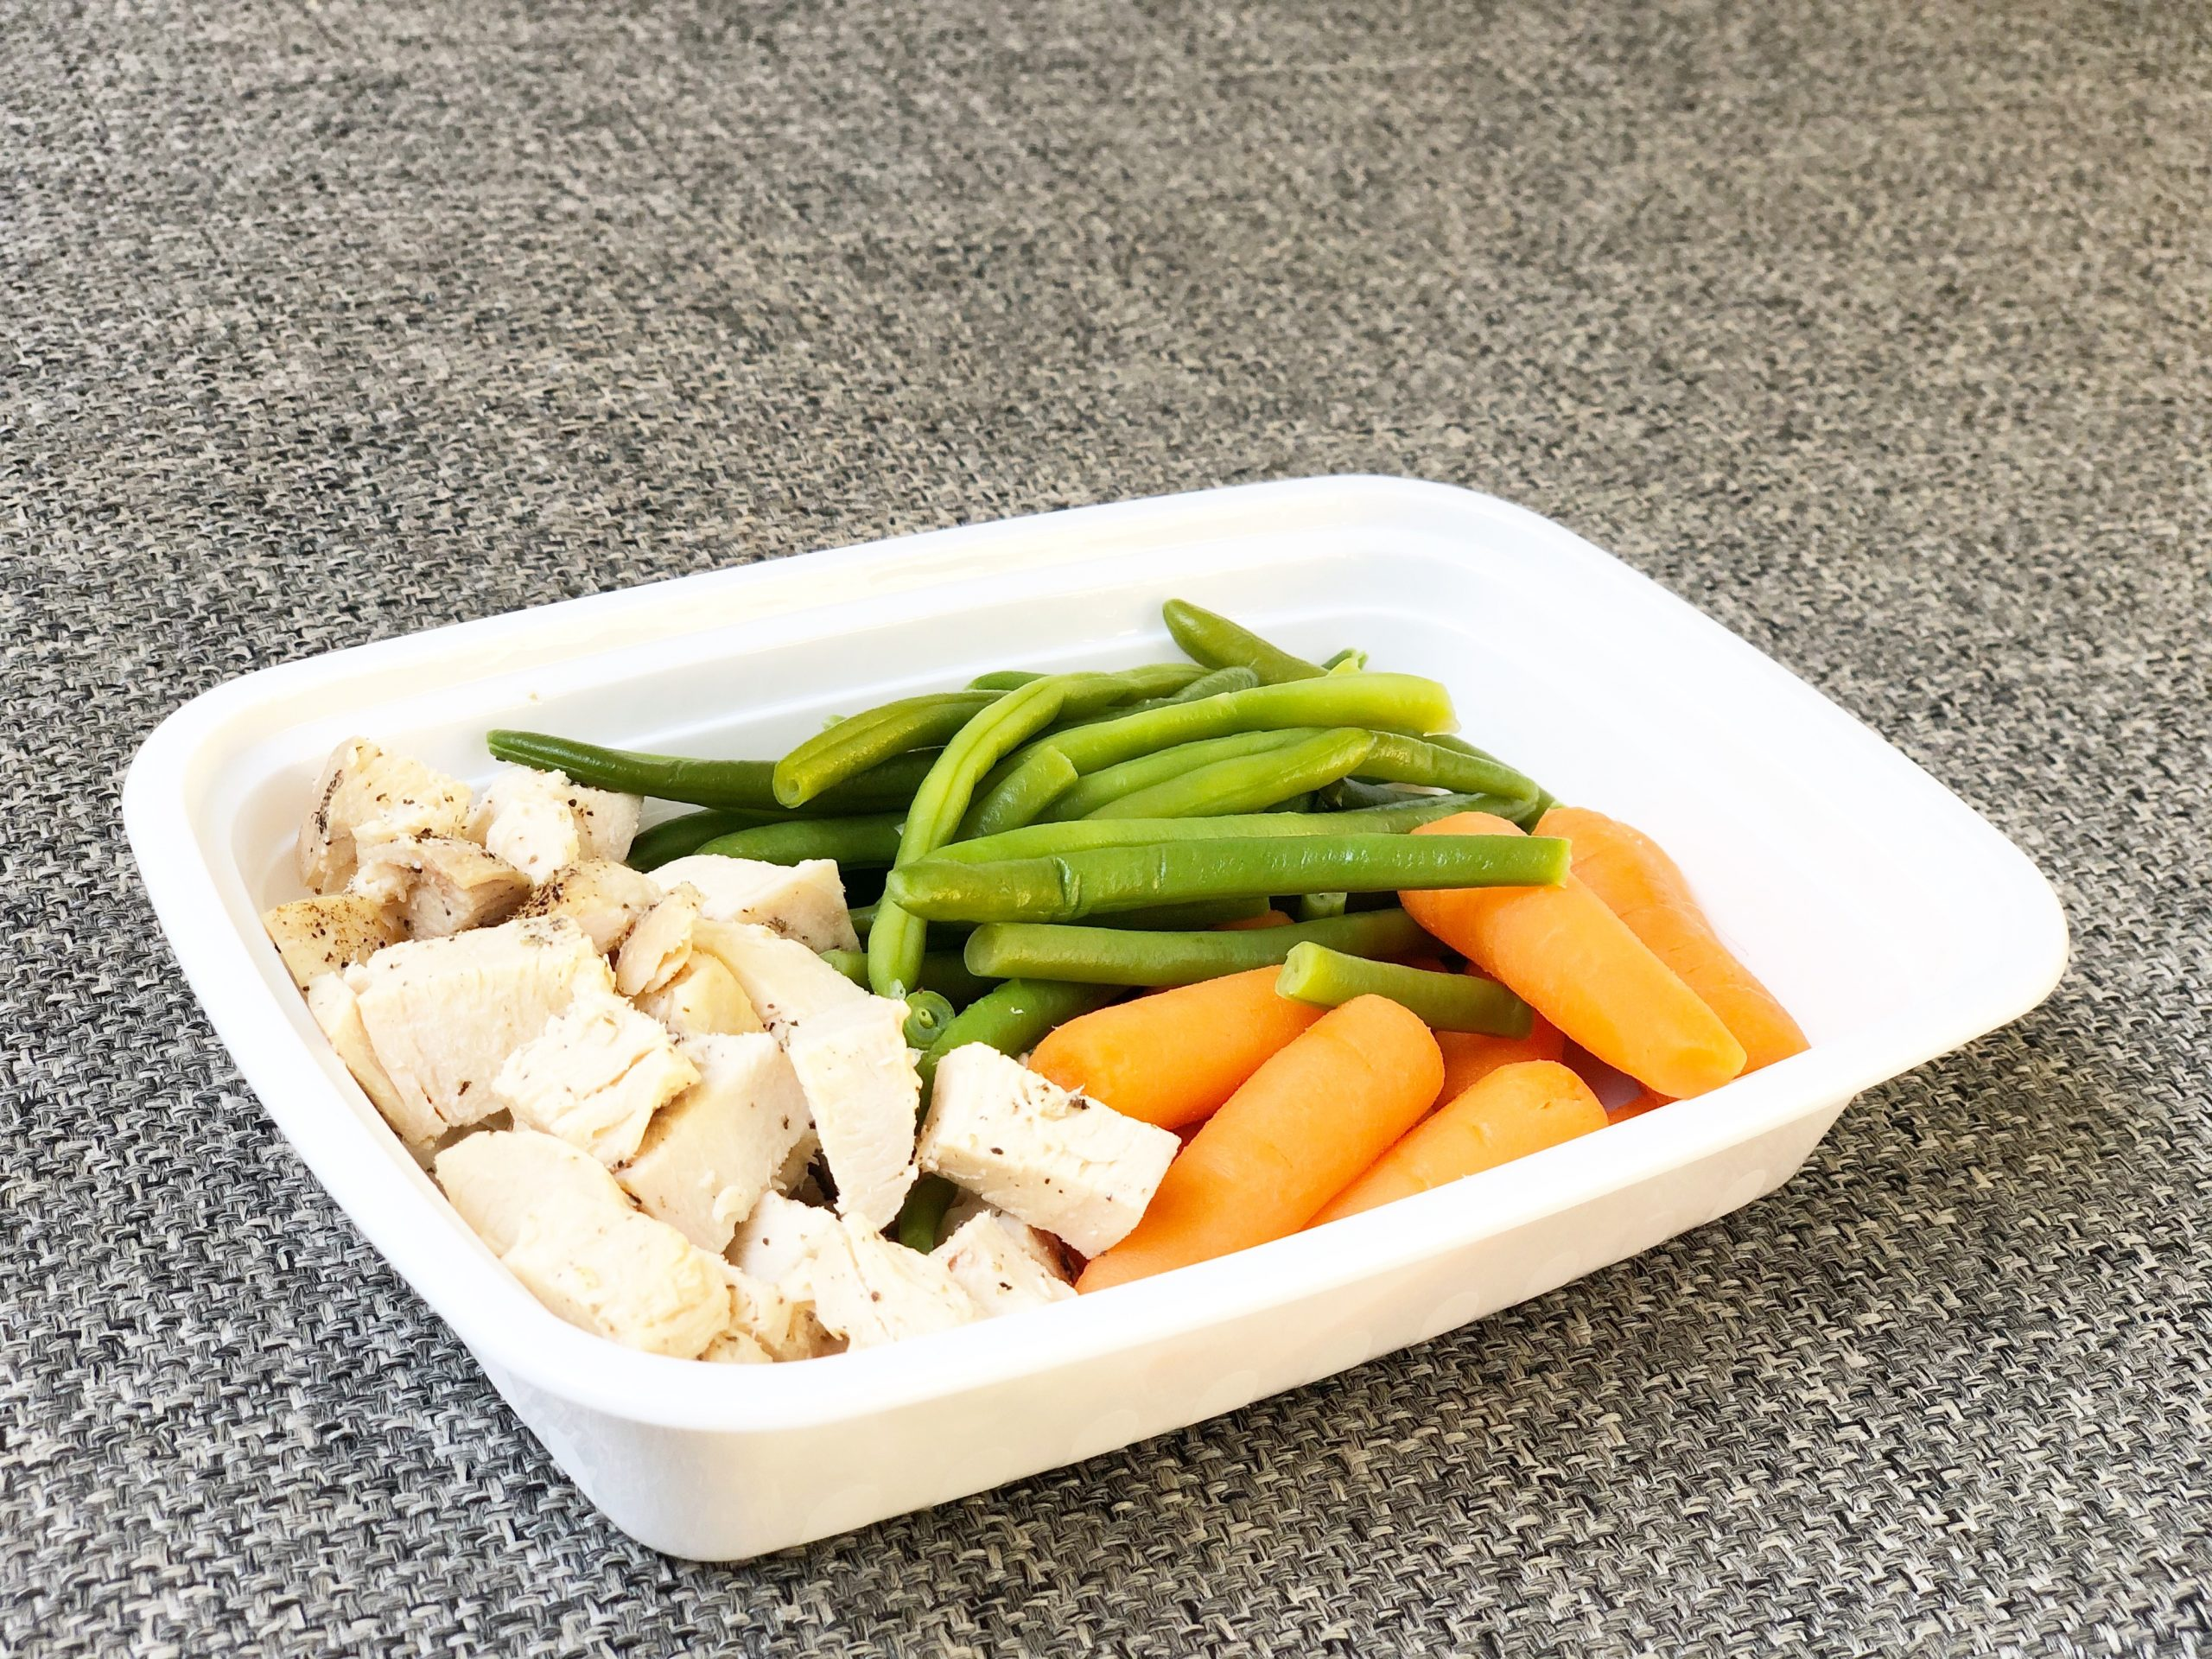 Chicken, carrots, green beans